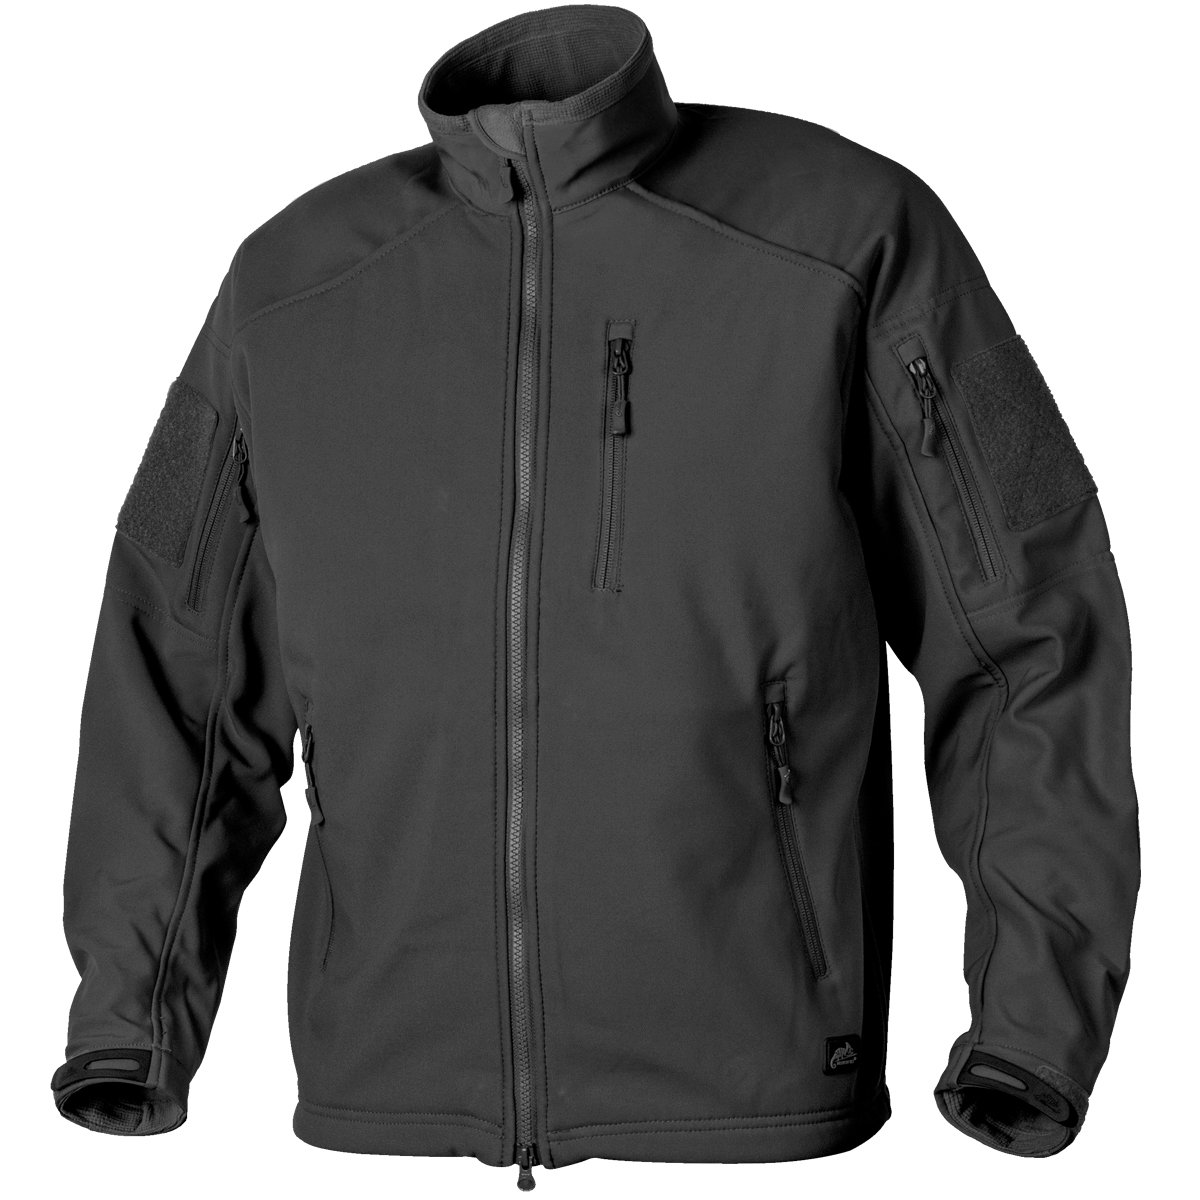 Helikon Men's Delta Tactical Jacket Black Size XL by HELIKON-TEX (Image #1)